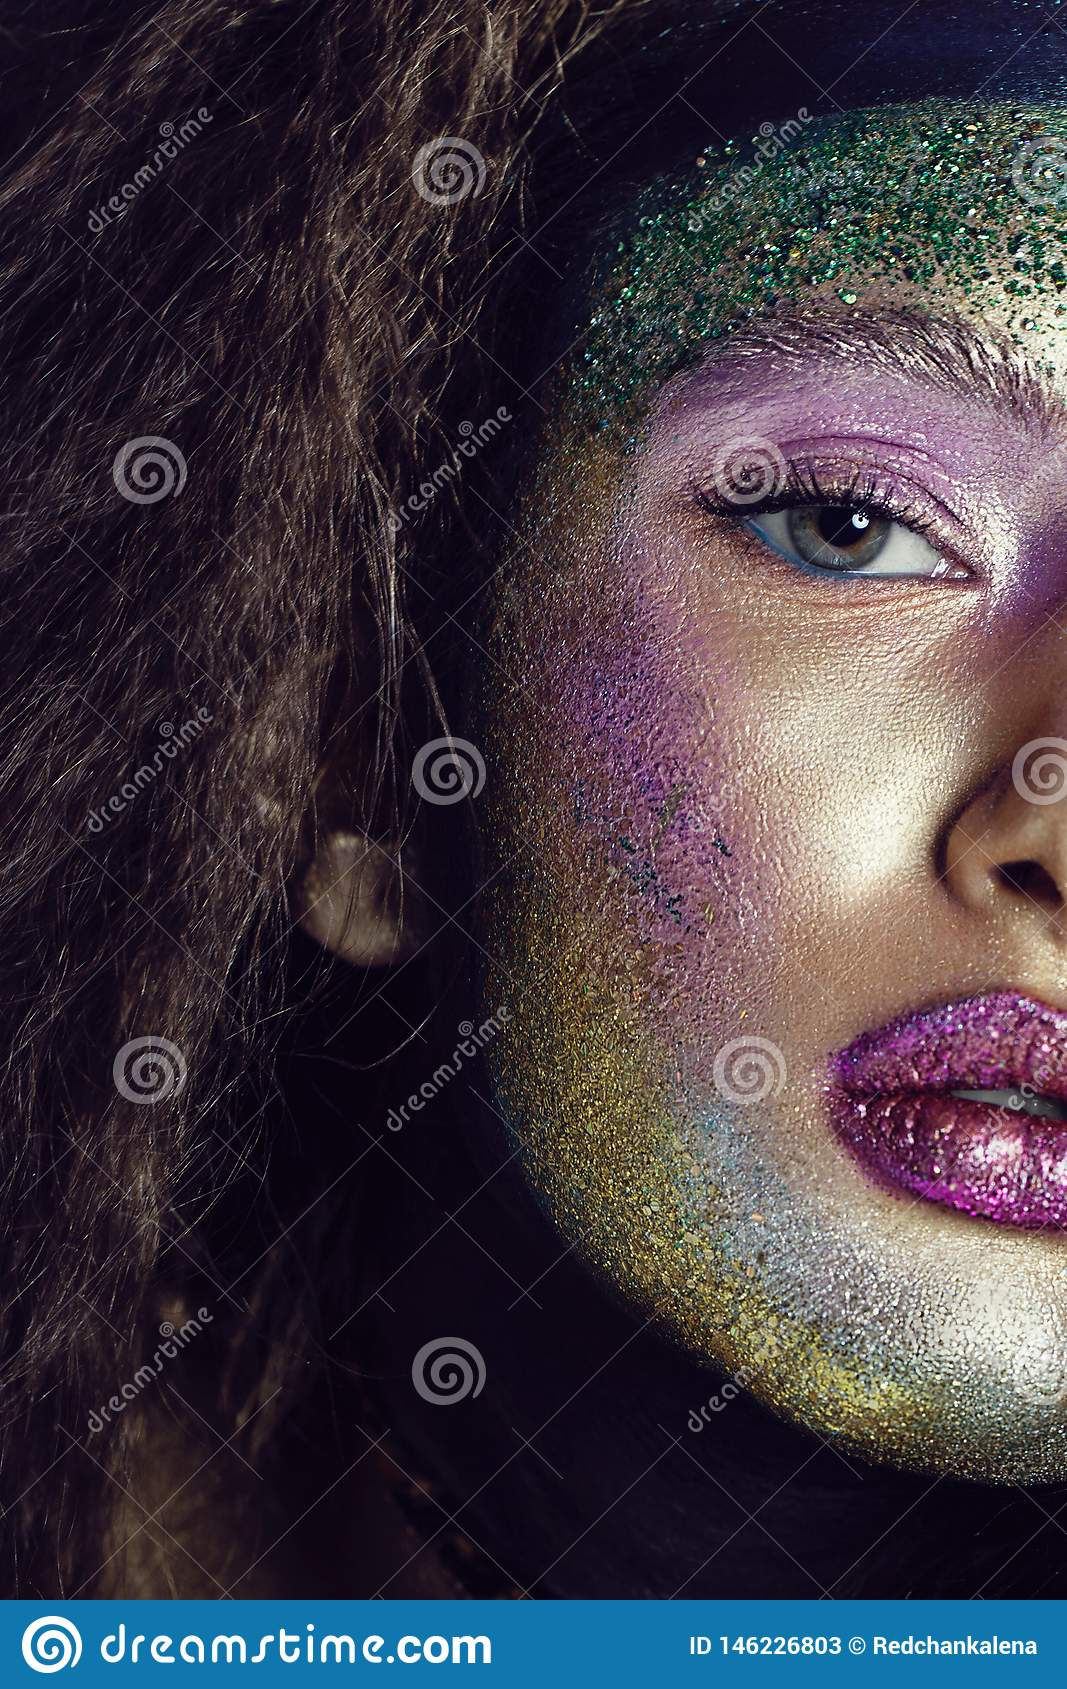 Beauty Cosmetics And Makeup Macro Shot Of Beautiful Woman S Face With Perfect Art Makeup With Glitter Stock Image Image Of Eyes Bright 146226803